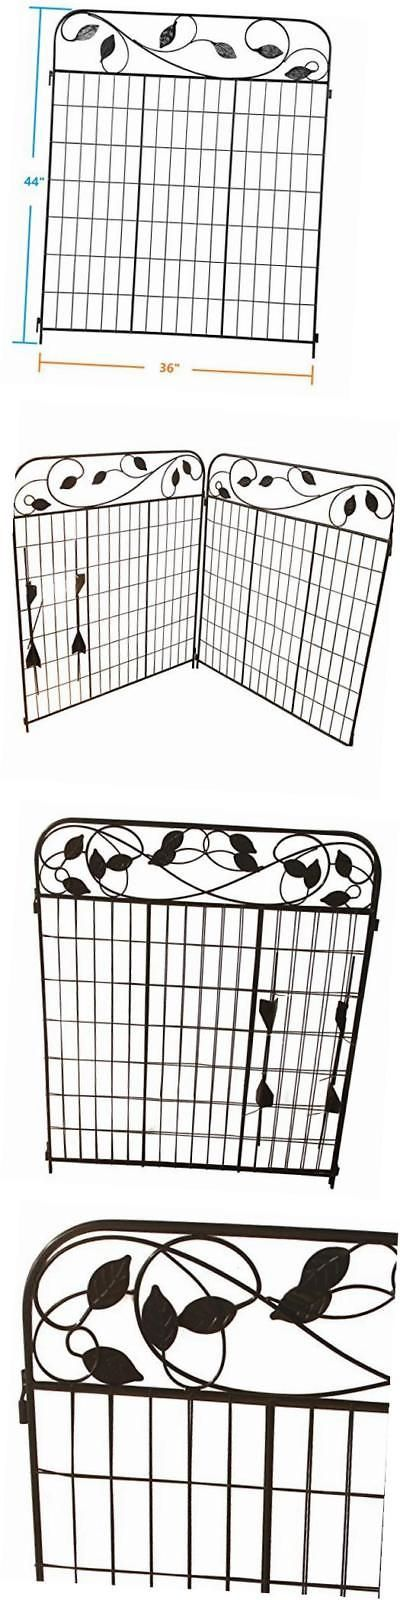 Trellises 43538: 36 W By 44 H X 2 Wrought Iron Folding Garden Fence Panels - Furnishing Fence -> BUY IT NOW ONLY: $66.71 on eBay!